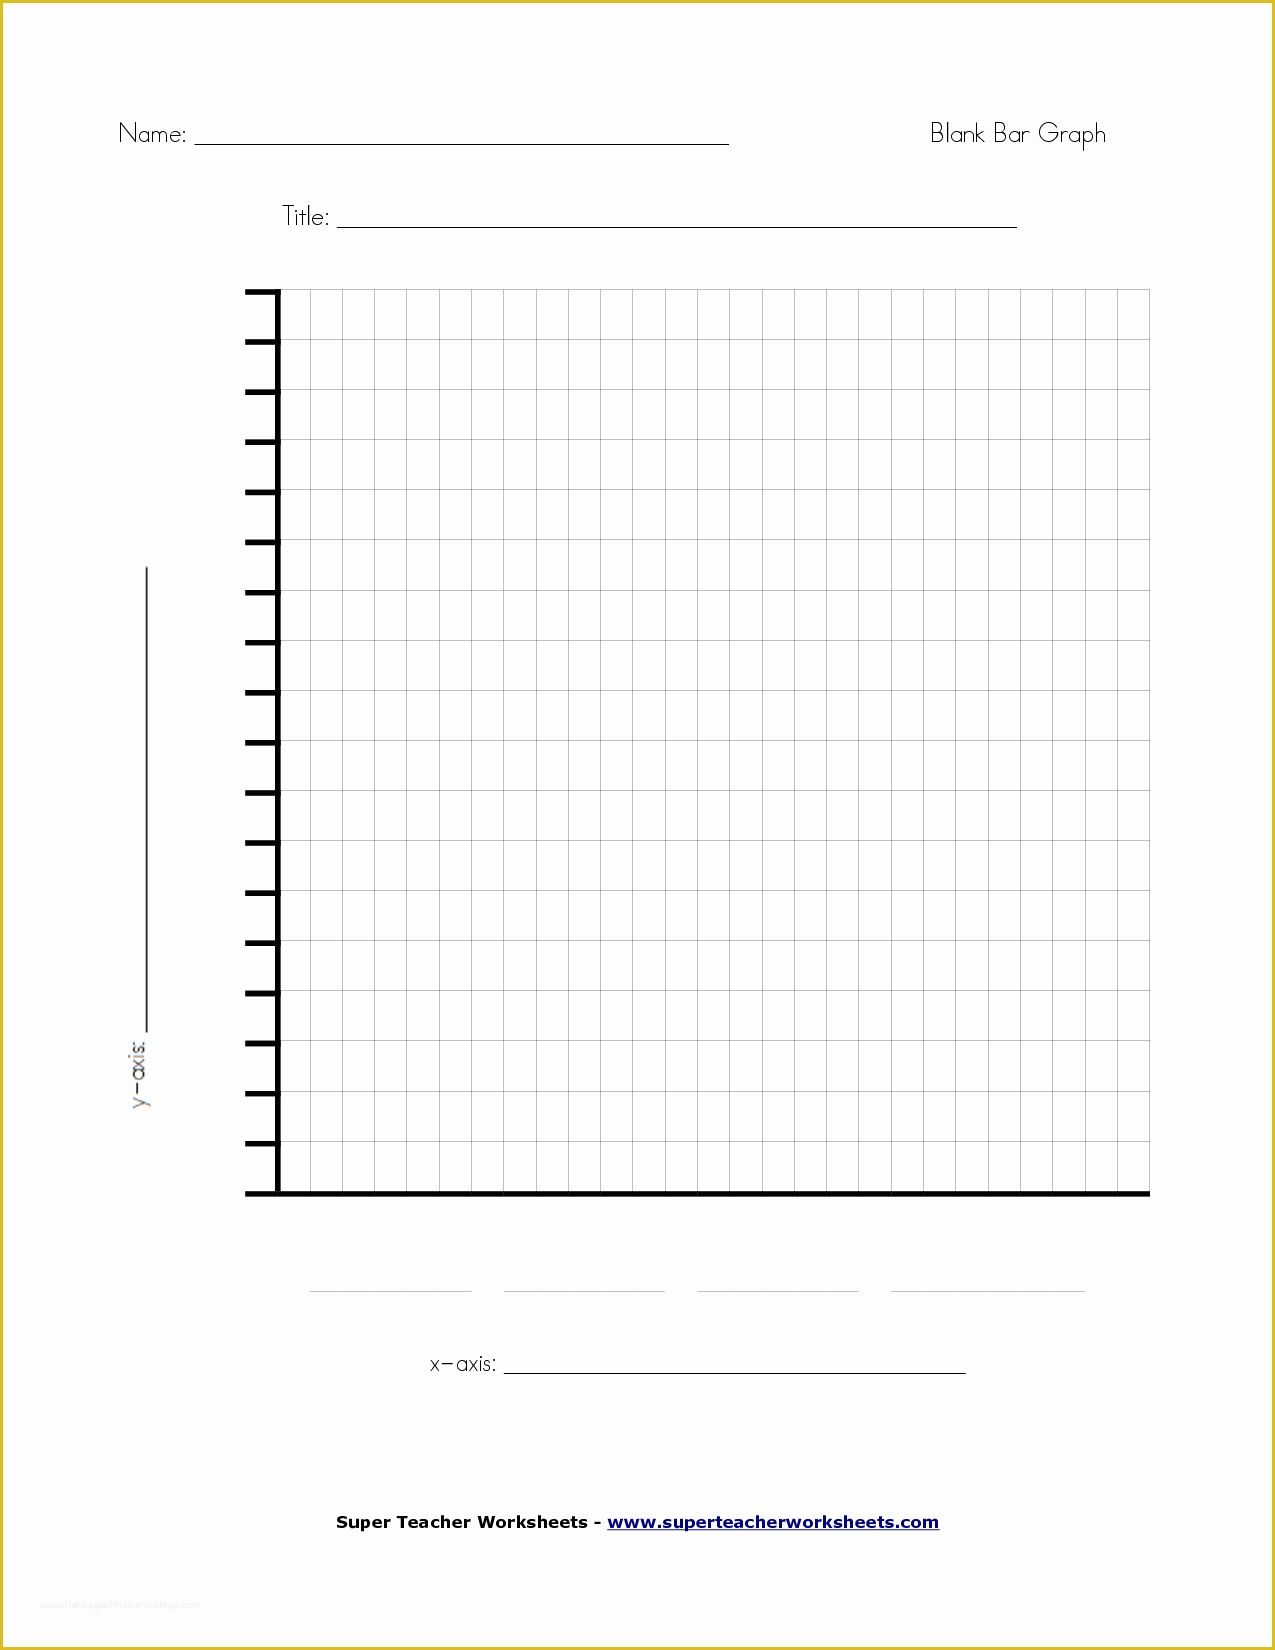 hight resolution of Blank Bar Graph Worksheet   Printable Worksheets and Activities for  Teachers